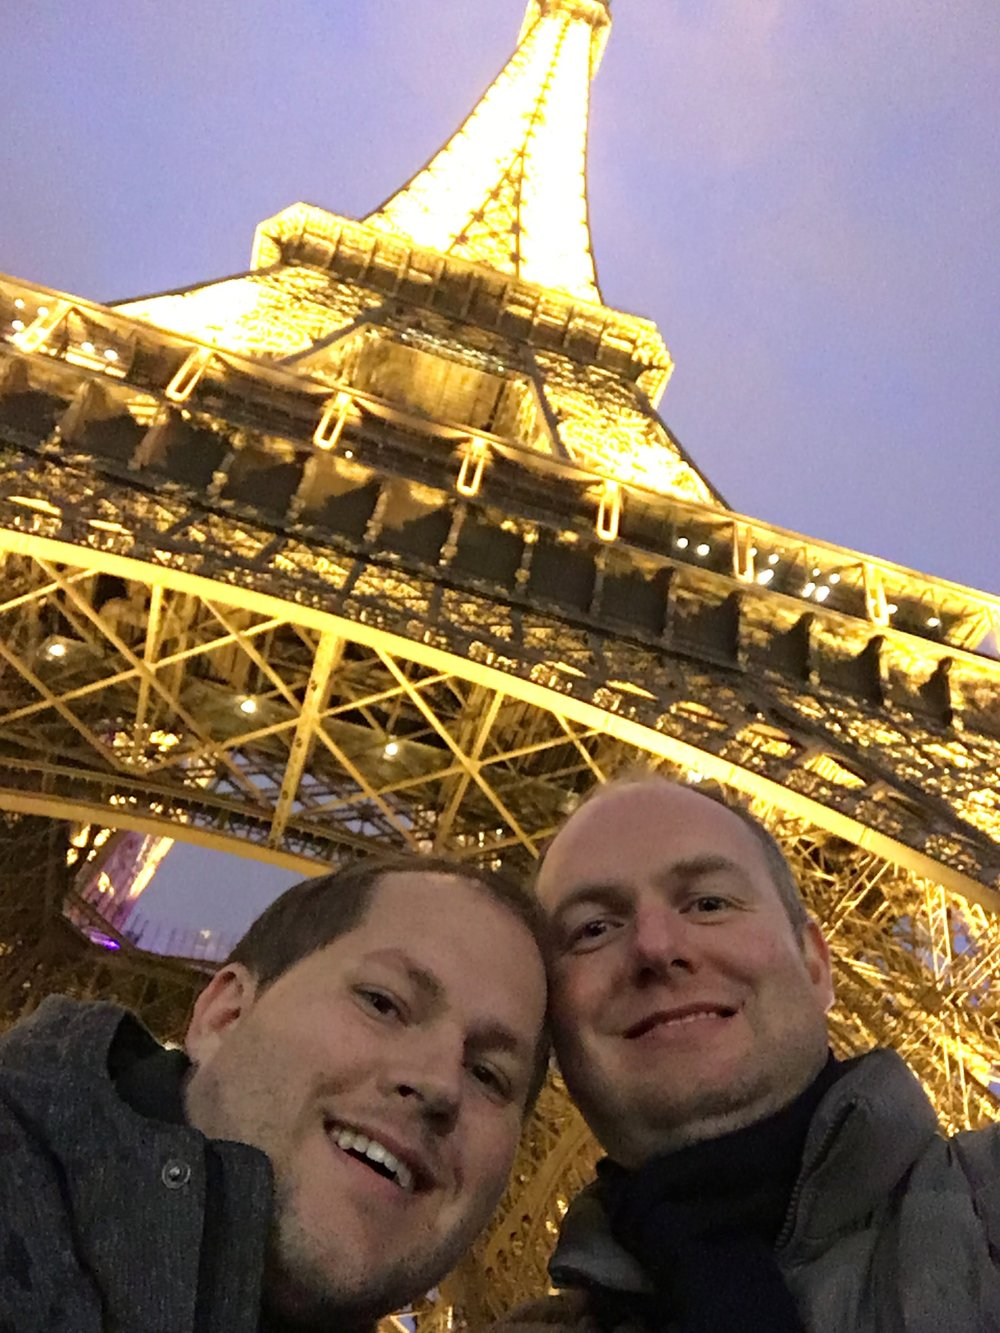 First time in Paris for both of us